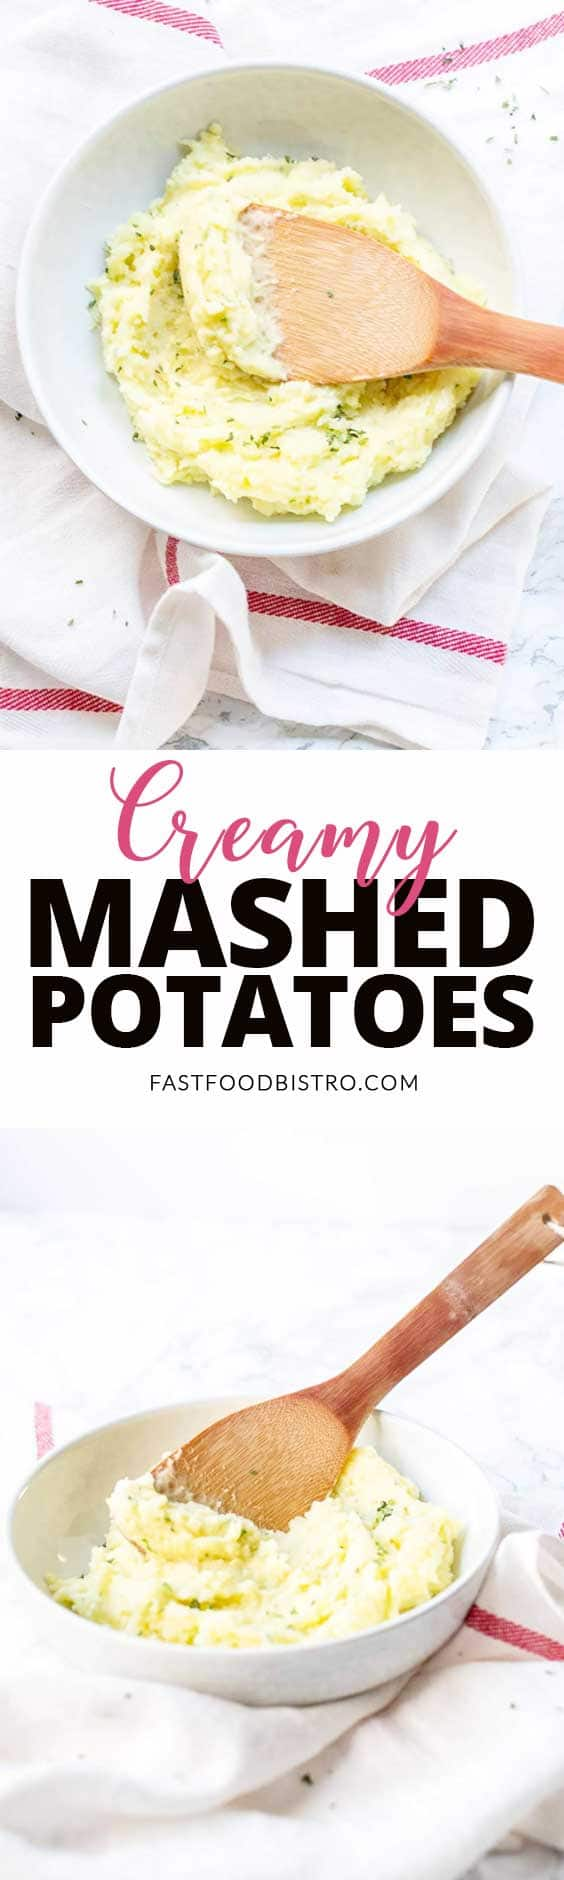 Looking for fast and easy mashed potatoes? Try this creamy mashed potato recipe that is on the table in no time. You can make it with or without dairy. Super tasty and it even has a slow cooker option. Visit fastfoodbistro.com for the full recipe #fastfoodbistro #creamymashedpotatoes #mashedpotatoes #mashedpotatoesrecipe #sidedish #fastsidedish #fastmashedpotatoes